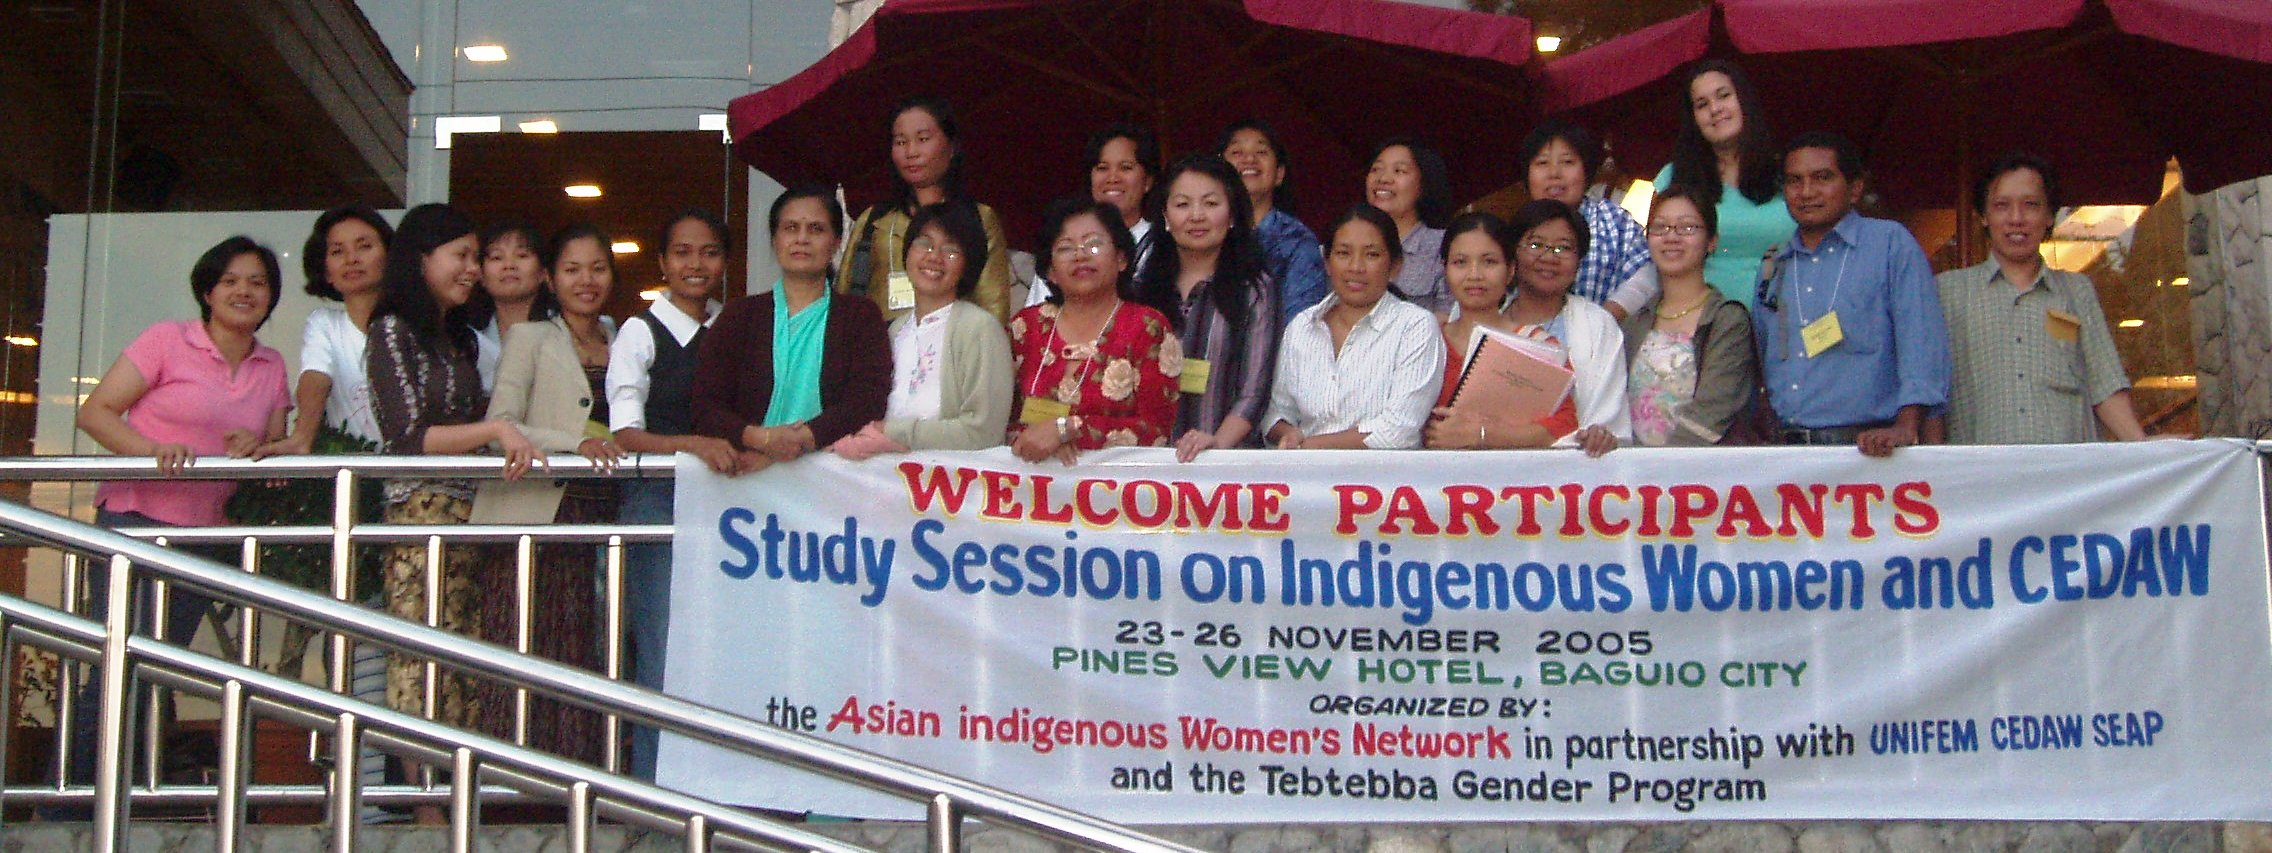 Study Session on Indigenous Women and the CEDAW